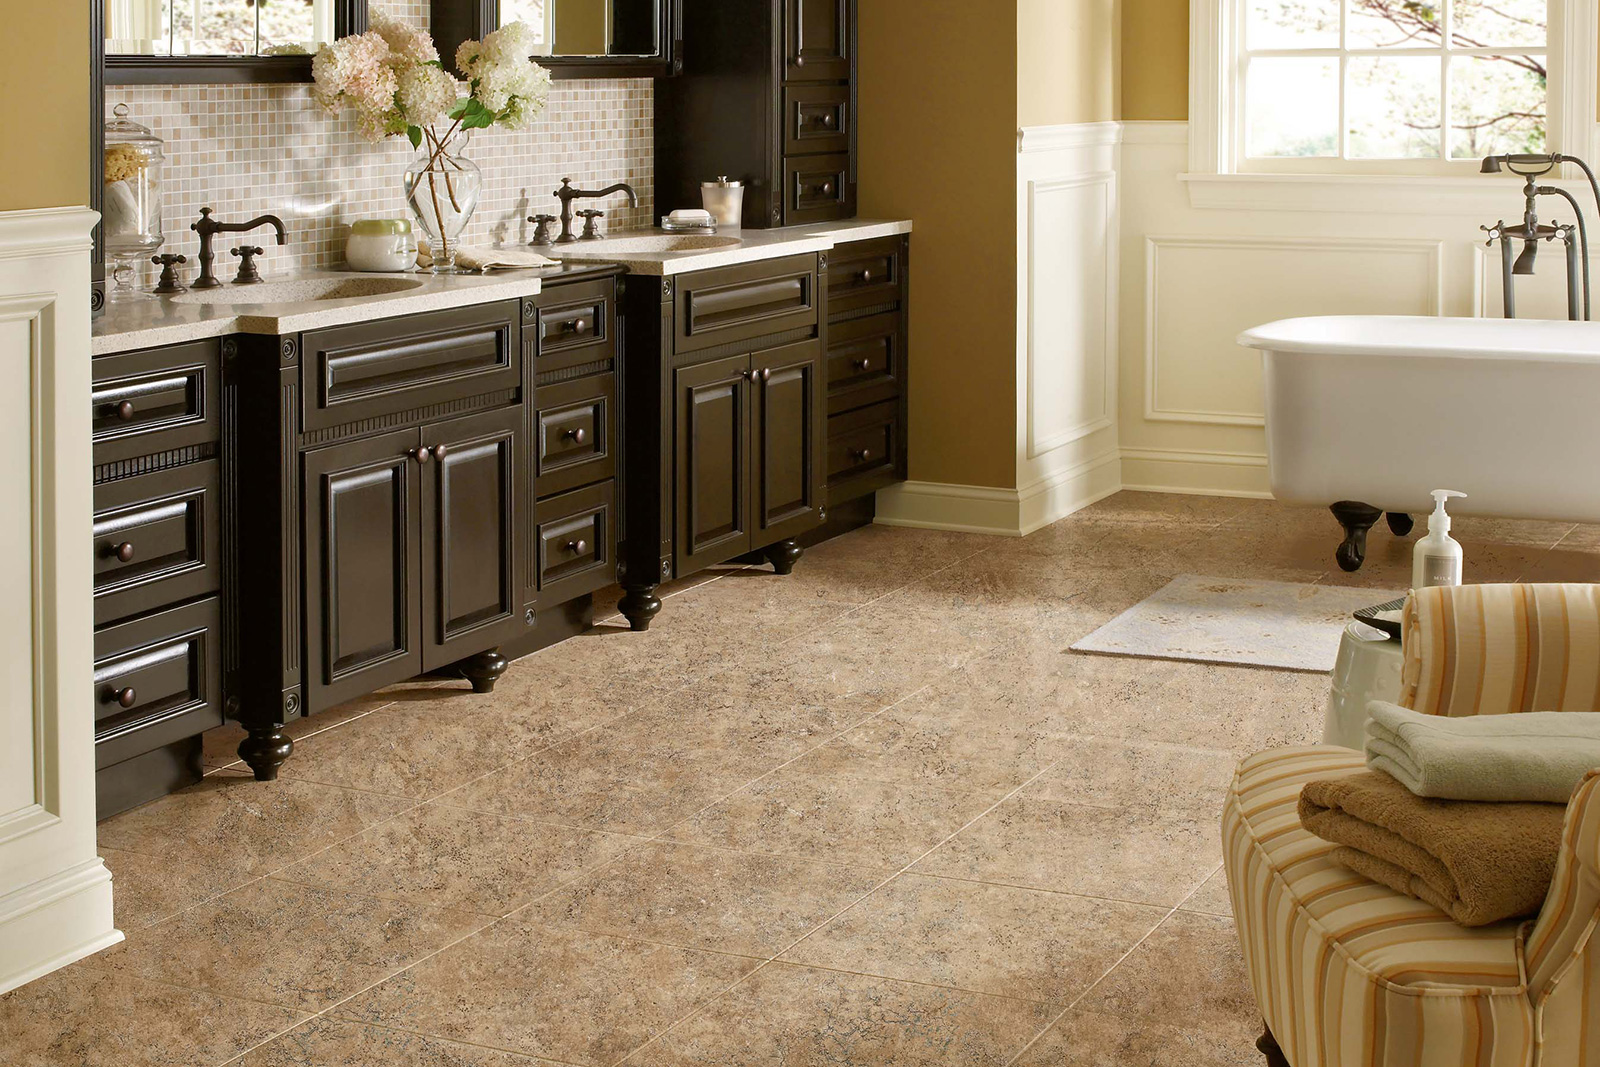 Bathroom Flooring | Bathroom Flooring Options | HouseLogic Bathrooms